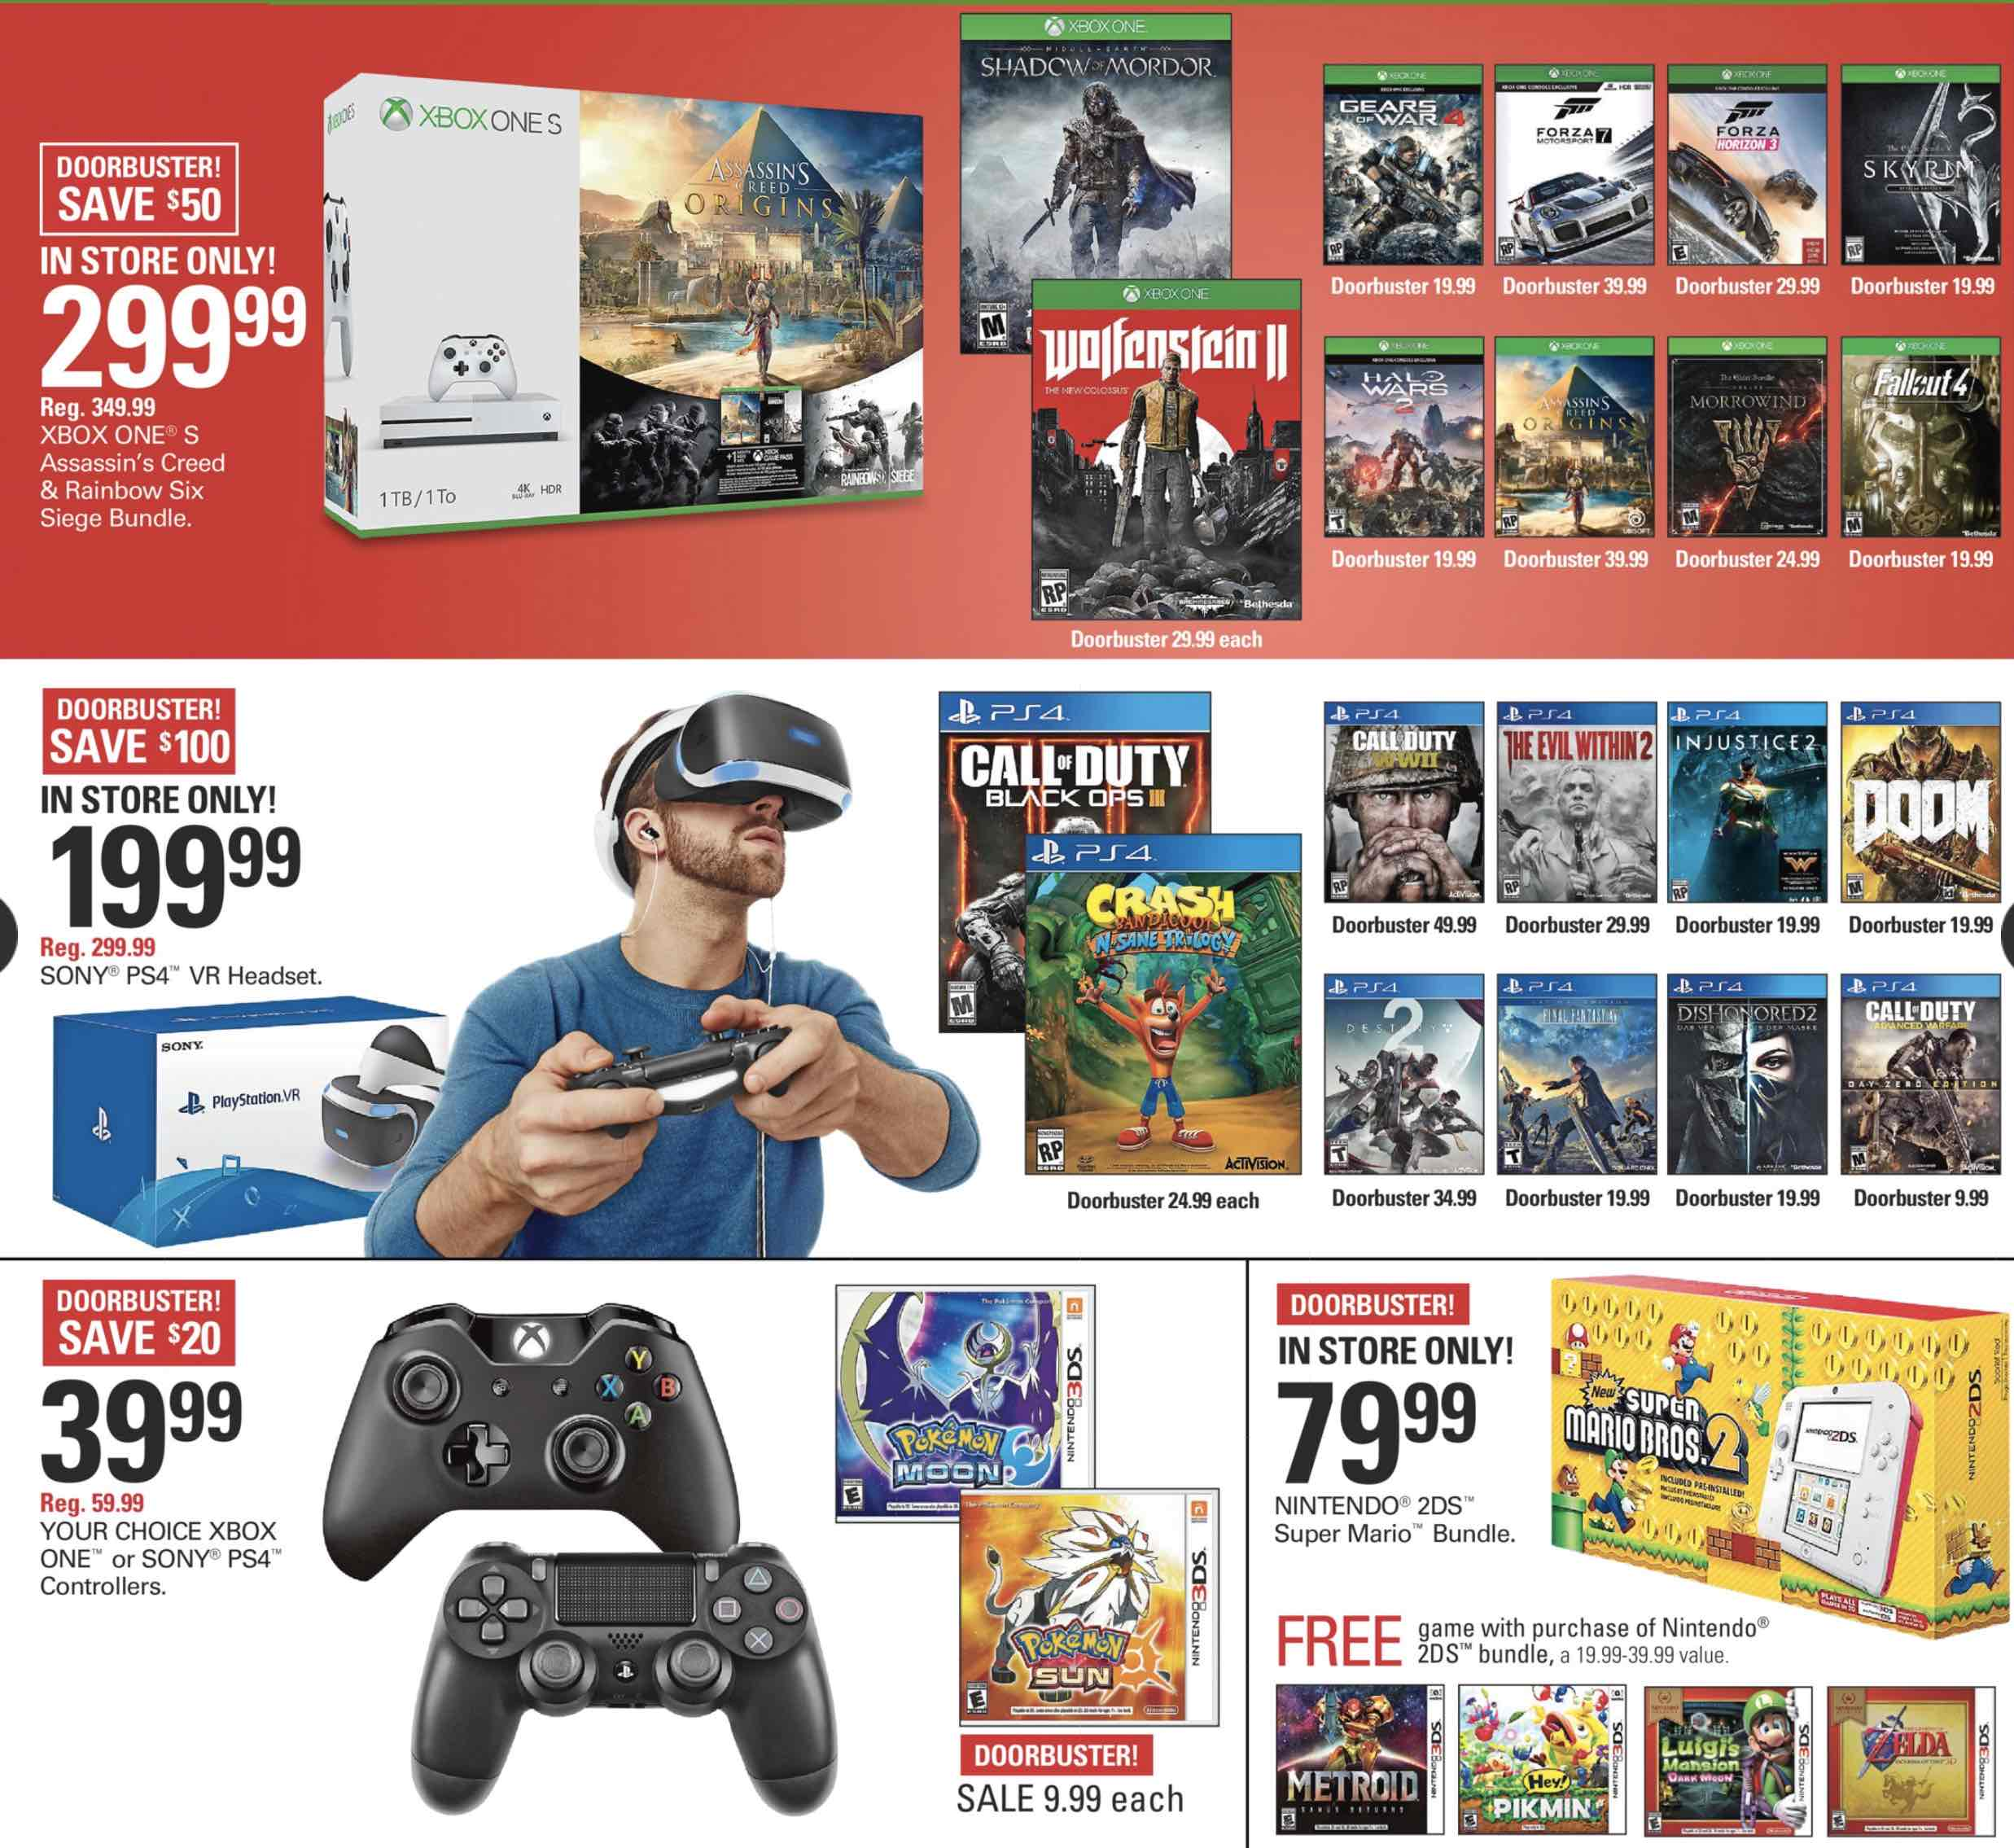 Target Shopko Black Friday Video Game Deals Nintendo Times 3ds Metroid Samus Returns Special Edition Reg Us